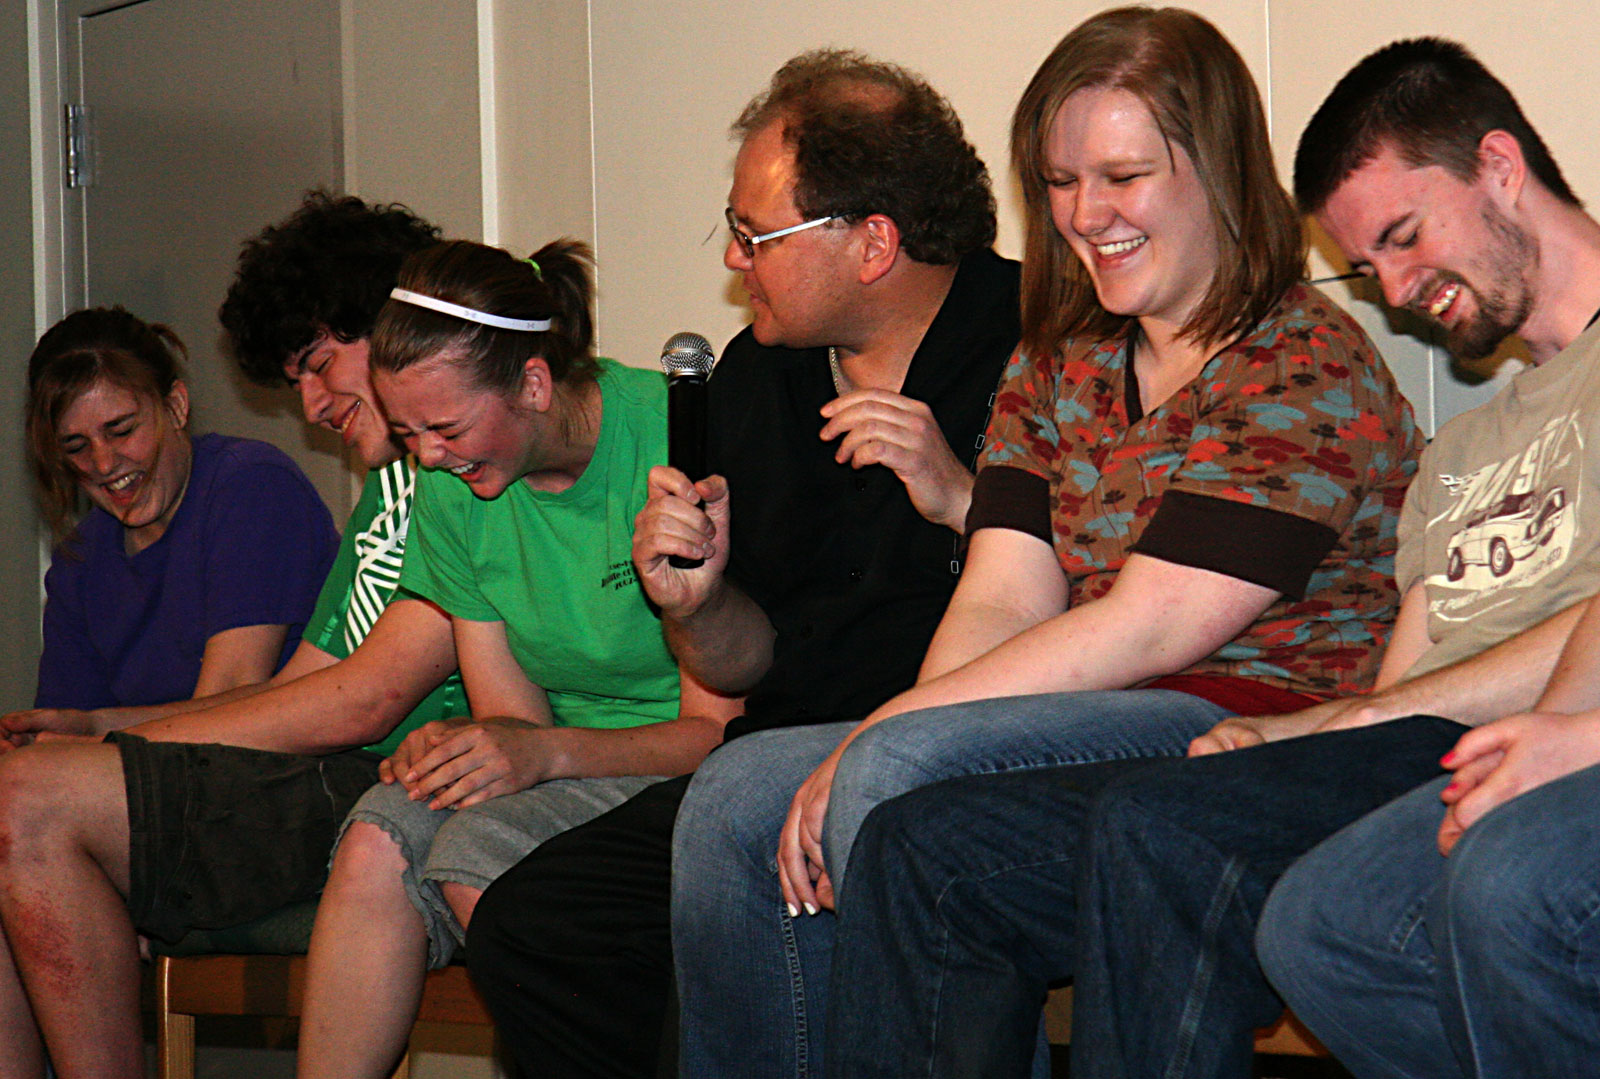 hypnotist chris cady with hypnotized college students laughing on stage in hypnotism show